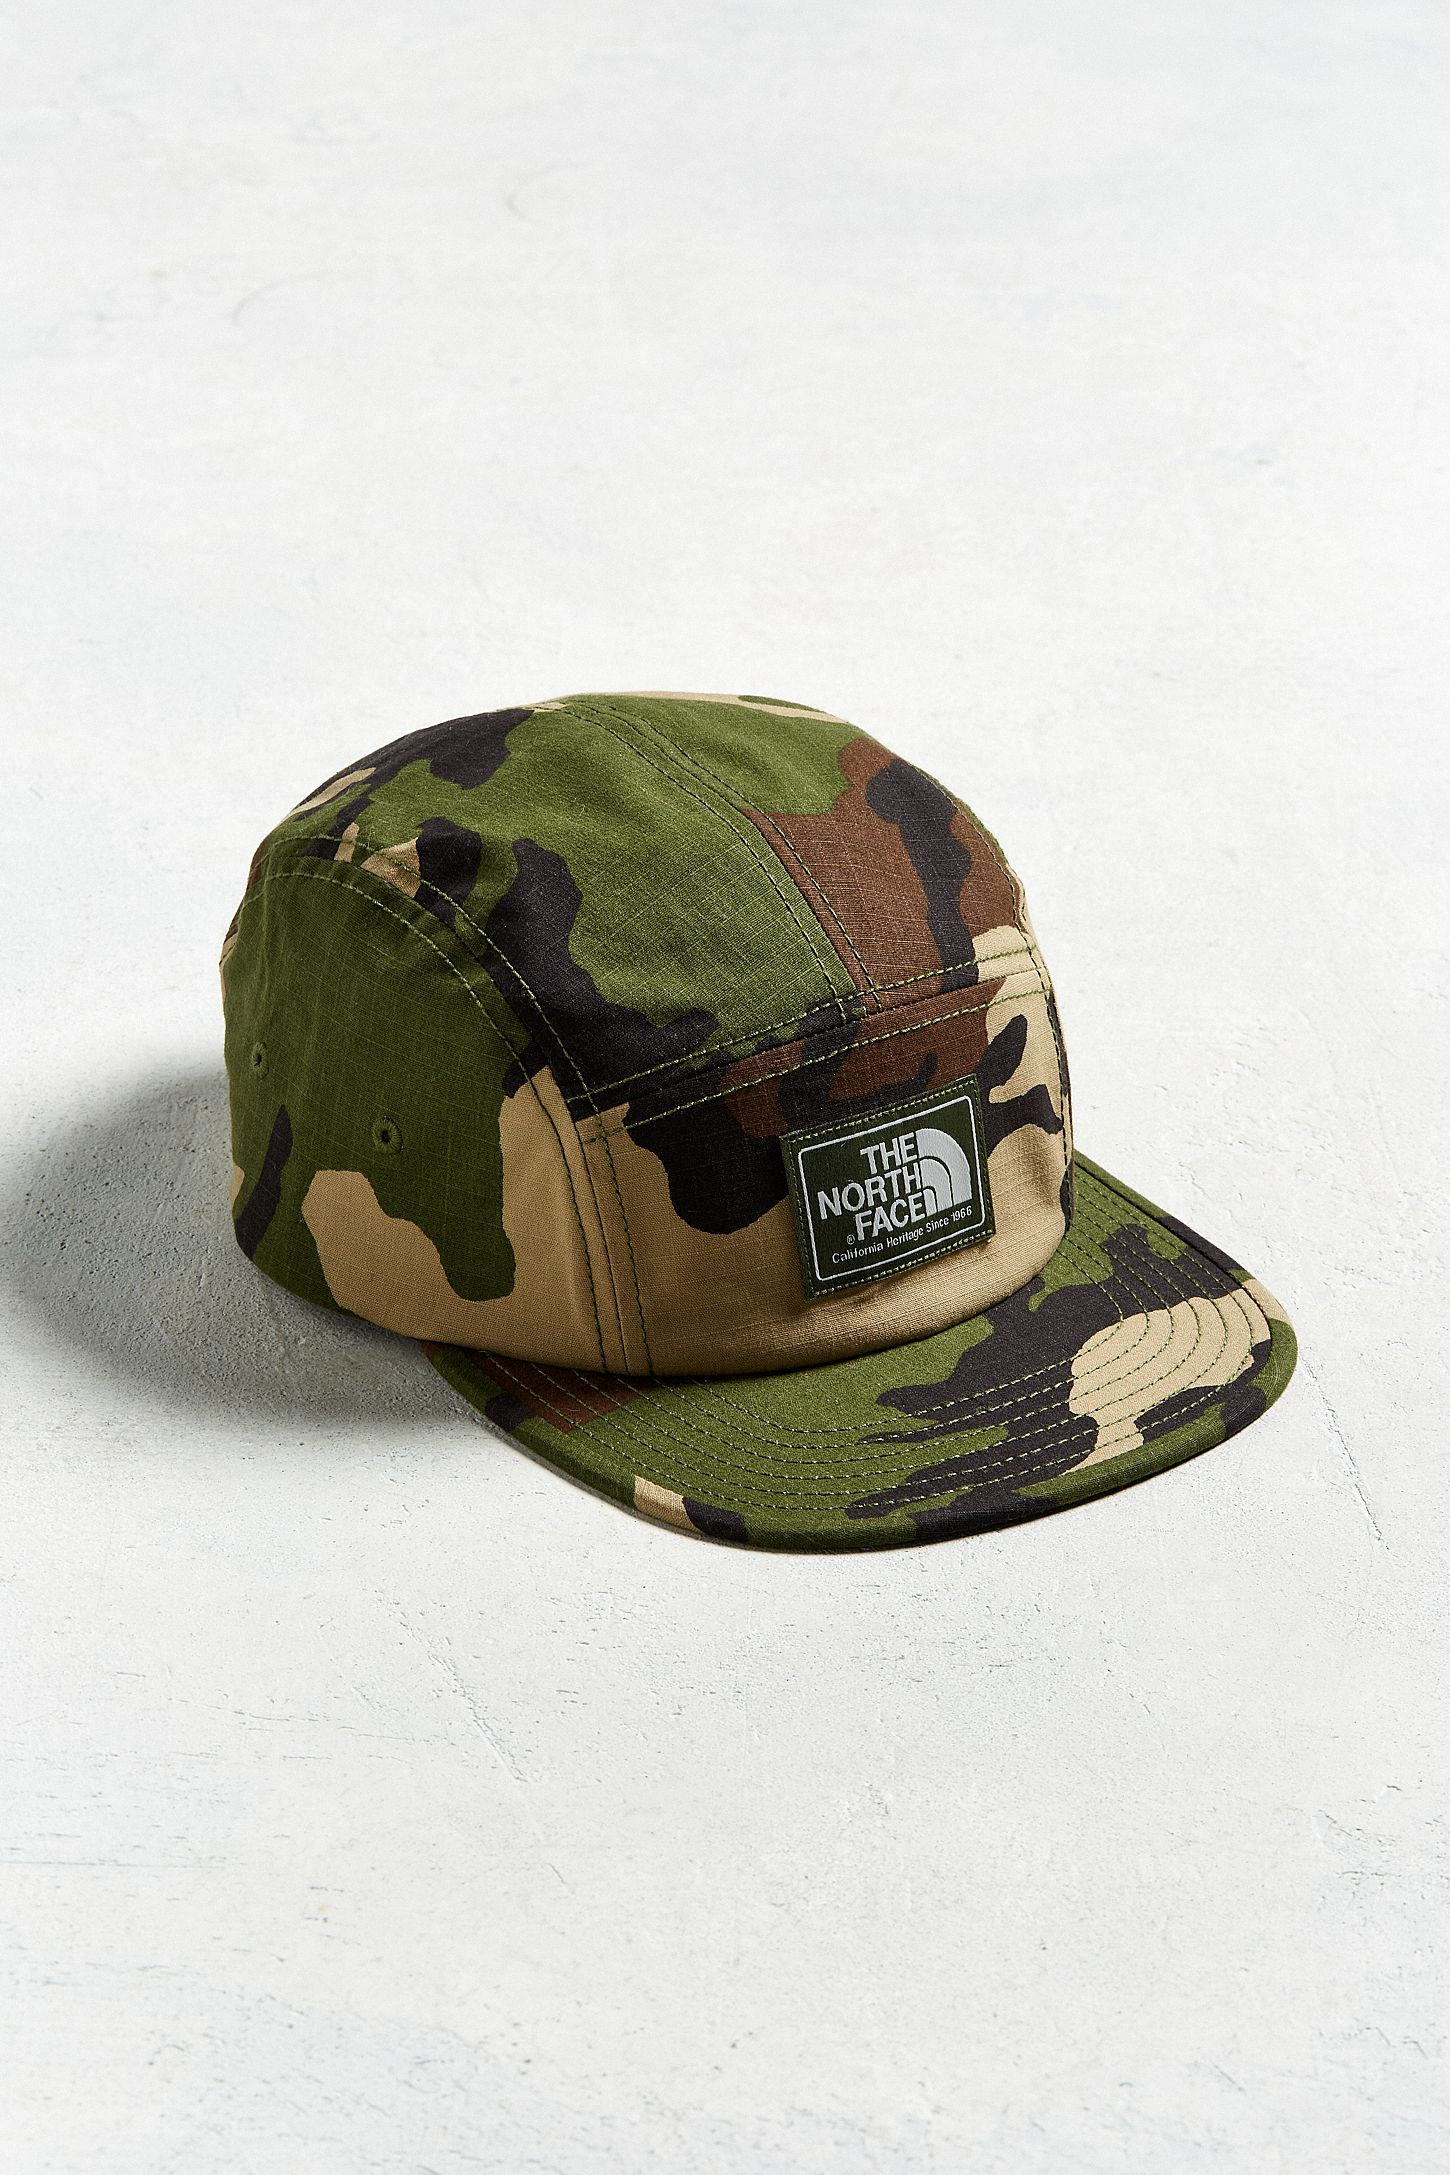 81072366811 The North Face 5-Panel Hat